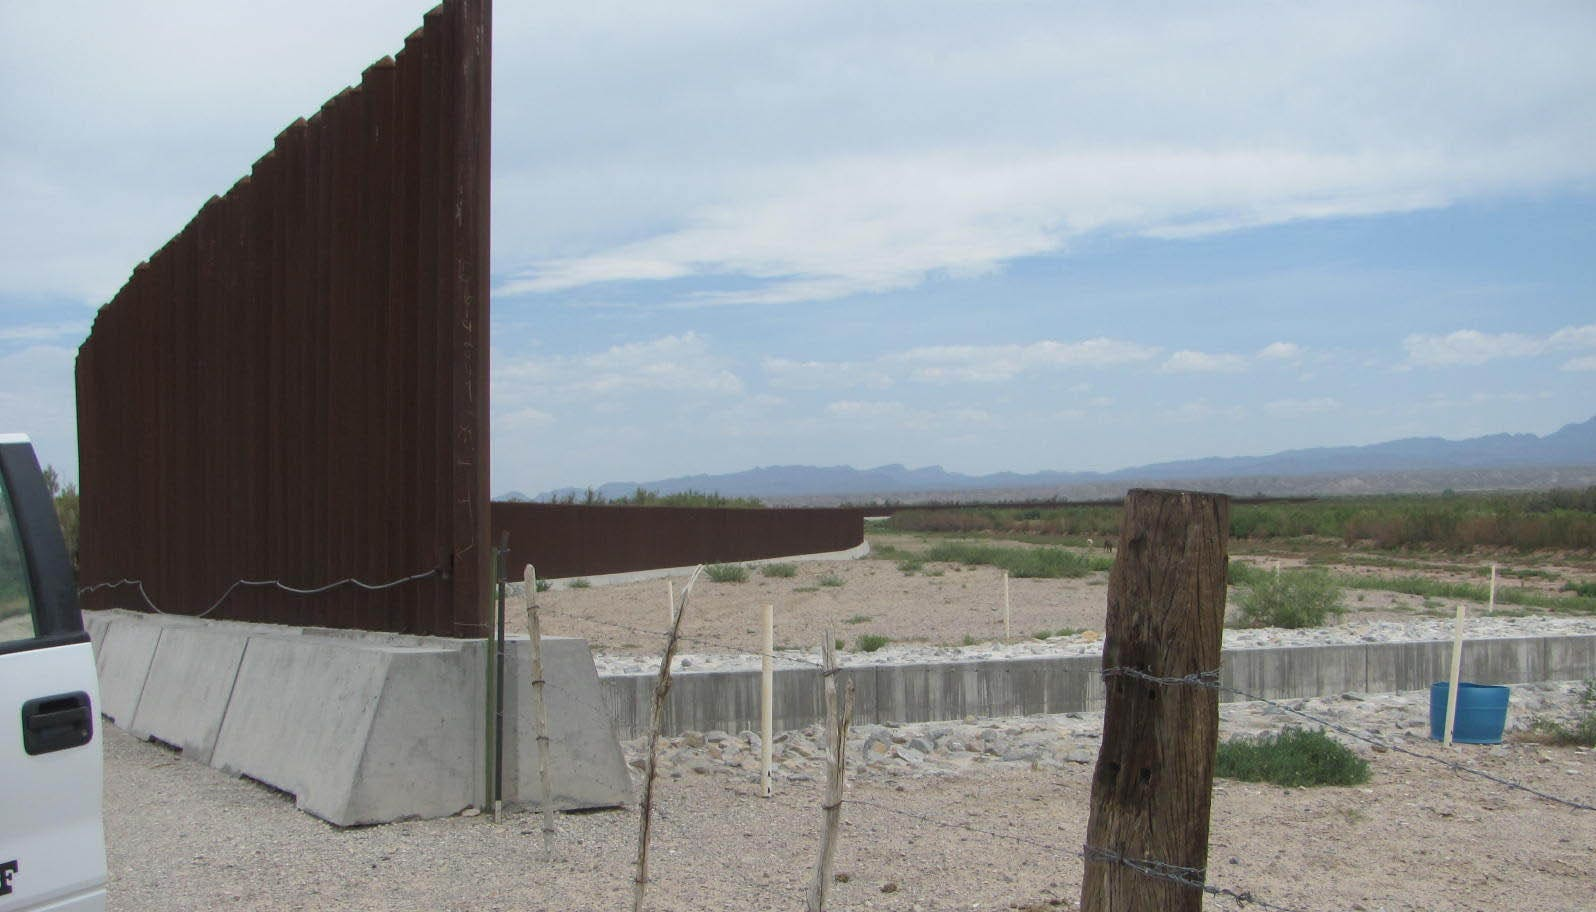 Fort Hancock Texas Where A Fence And Hope For Illegals